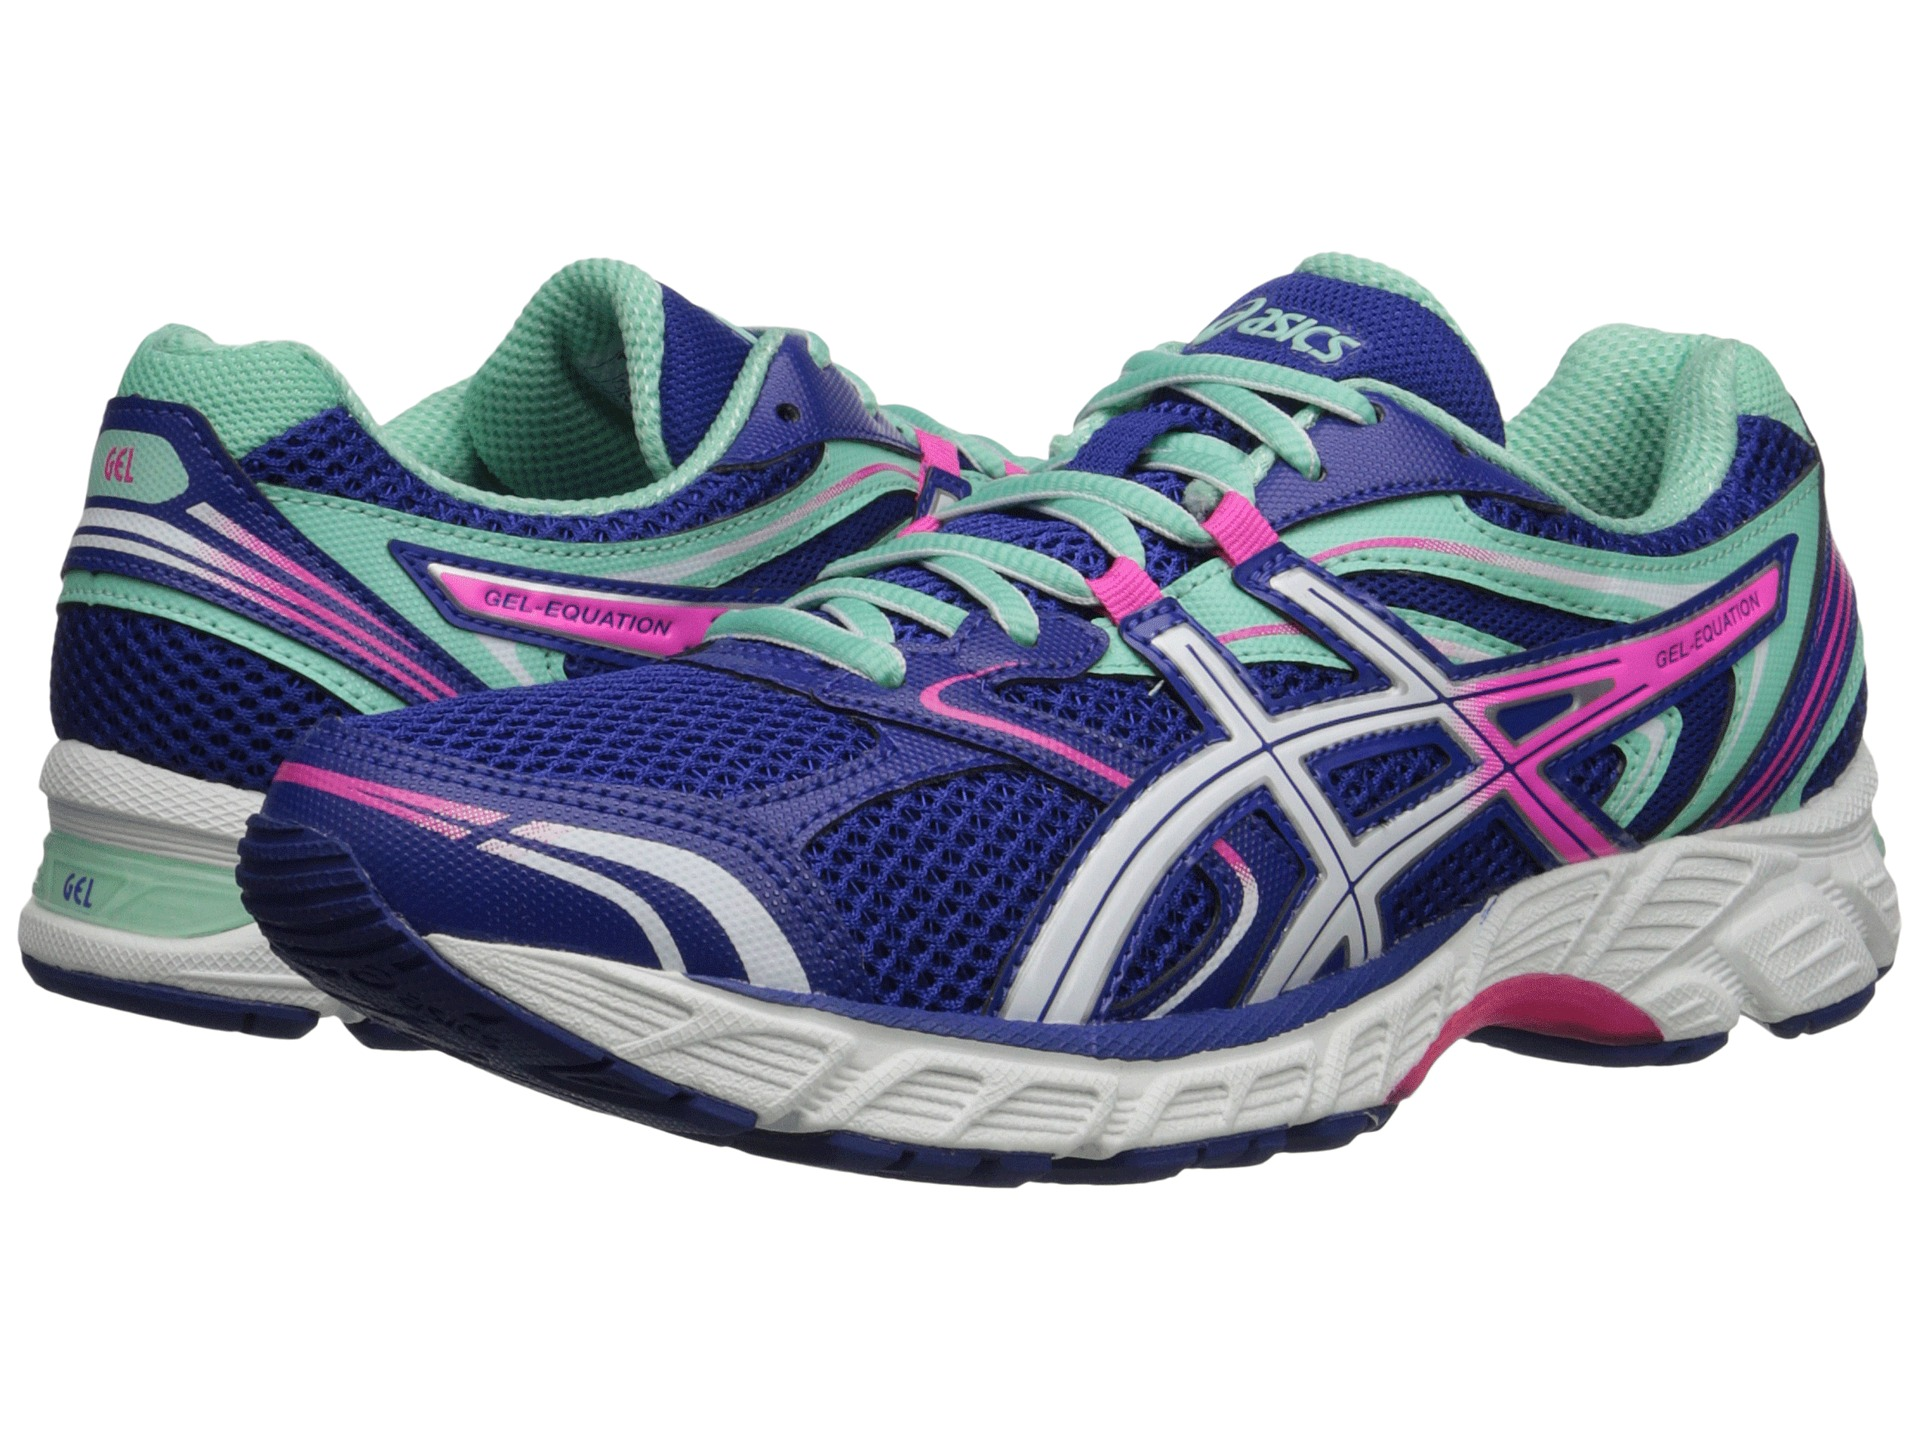 asics ladies running shoes size 9